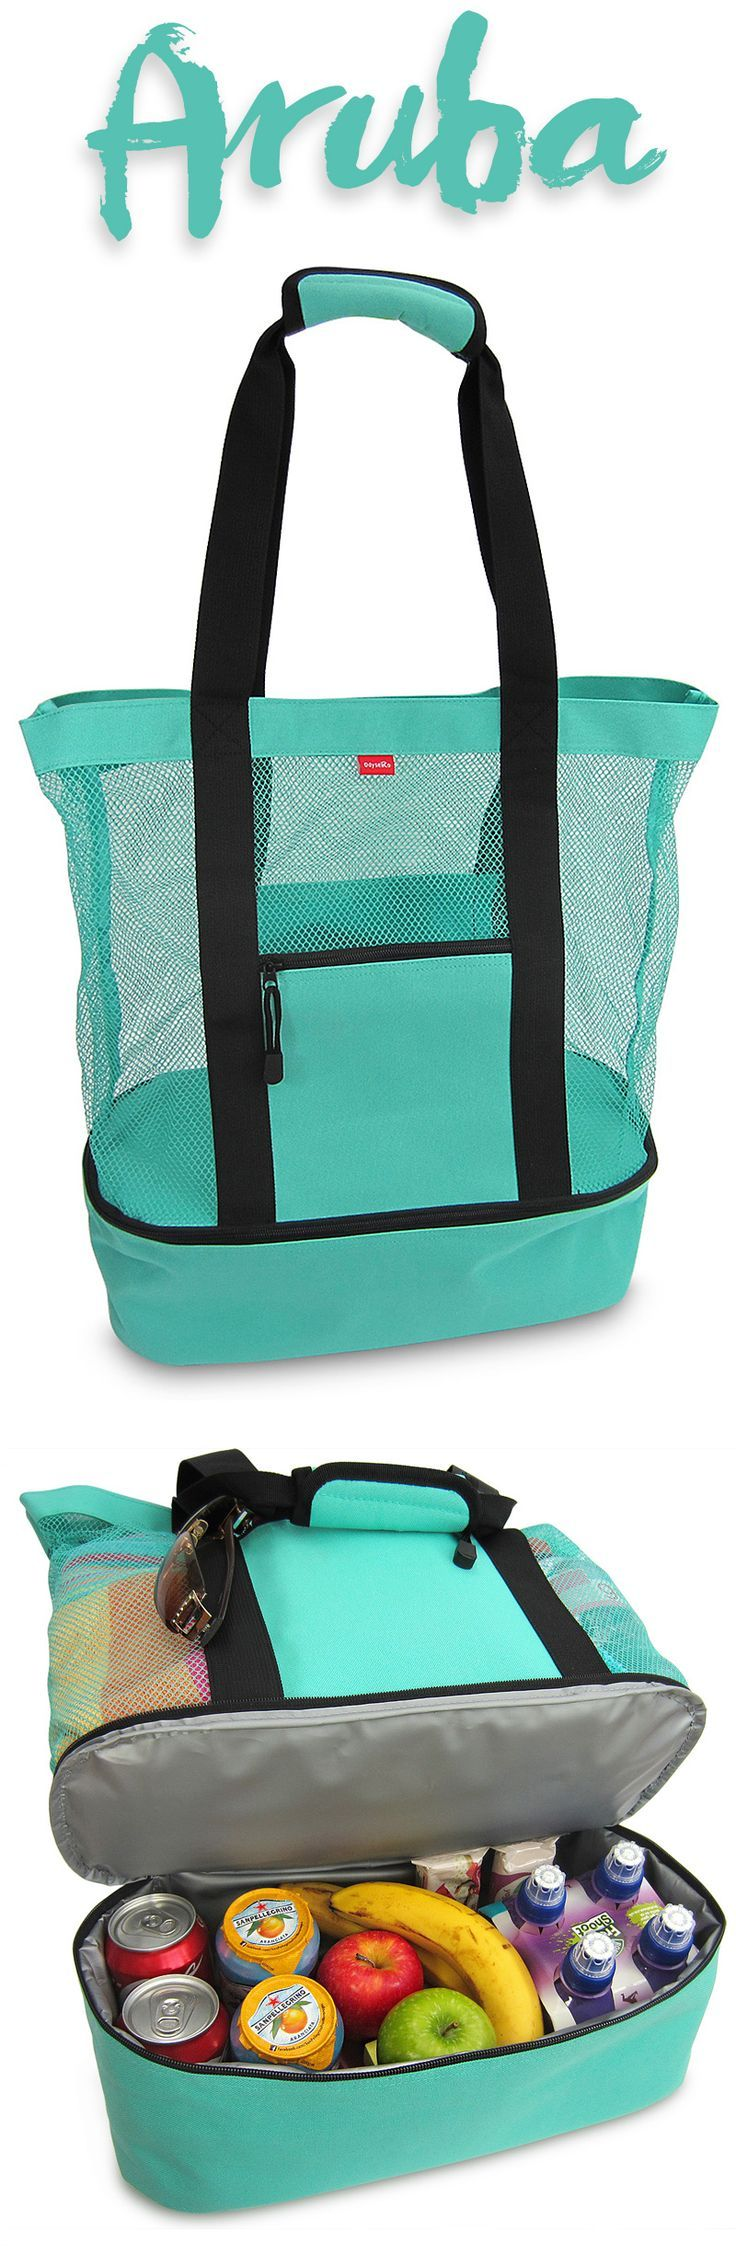 Love the Aruba Mesh Beach Bag Cooler from OdyseaCo - the perfect turquoise summer essential for beach or pool, it makes a great bag for festivals and concerts too!  :)  http://www.amazon.com/Aruba-Beach-Insulated-Picnic-Cooler/dp/B00VV7GPMS #beachlife - shop & bag, bag accessories, hand bag *ad